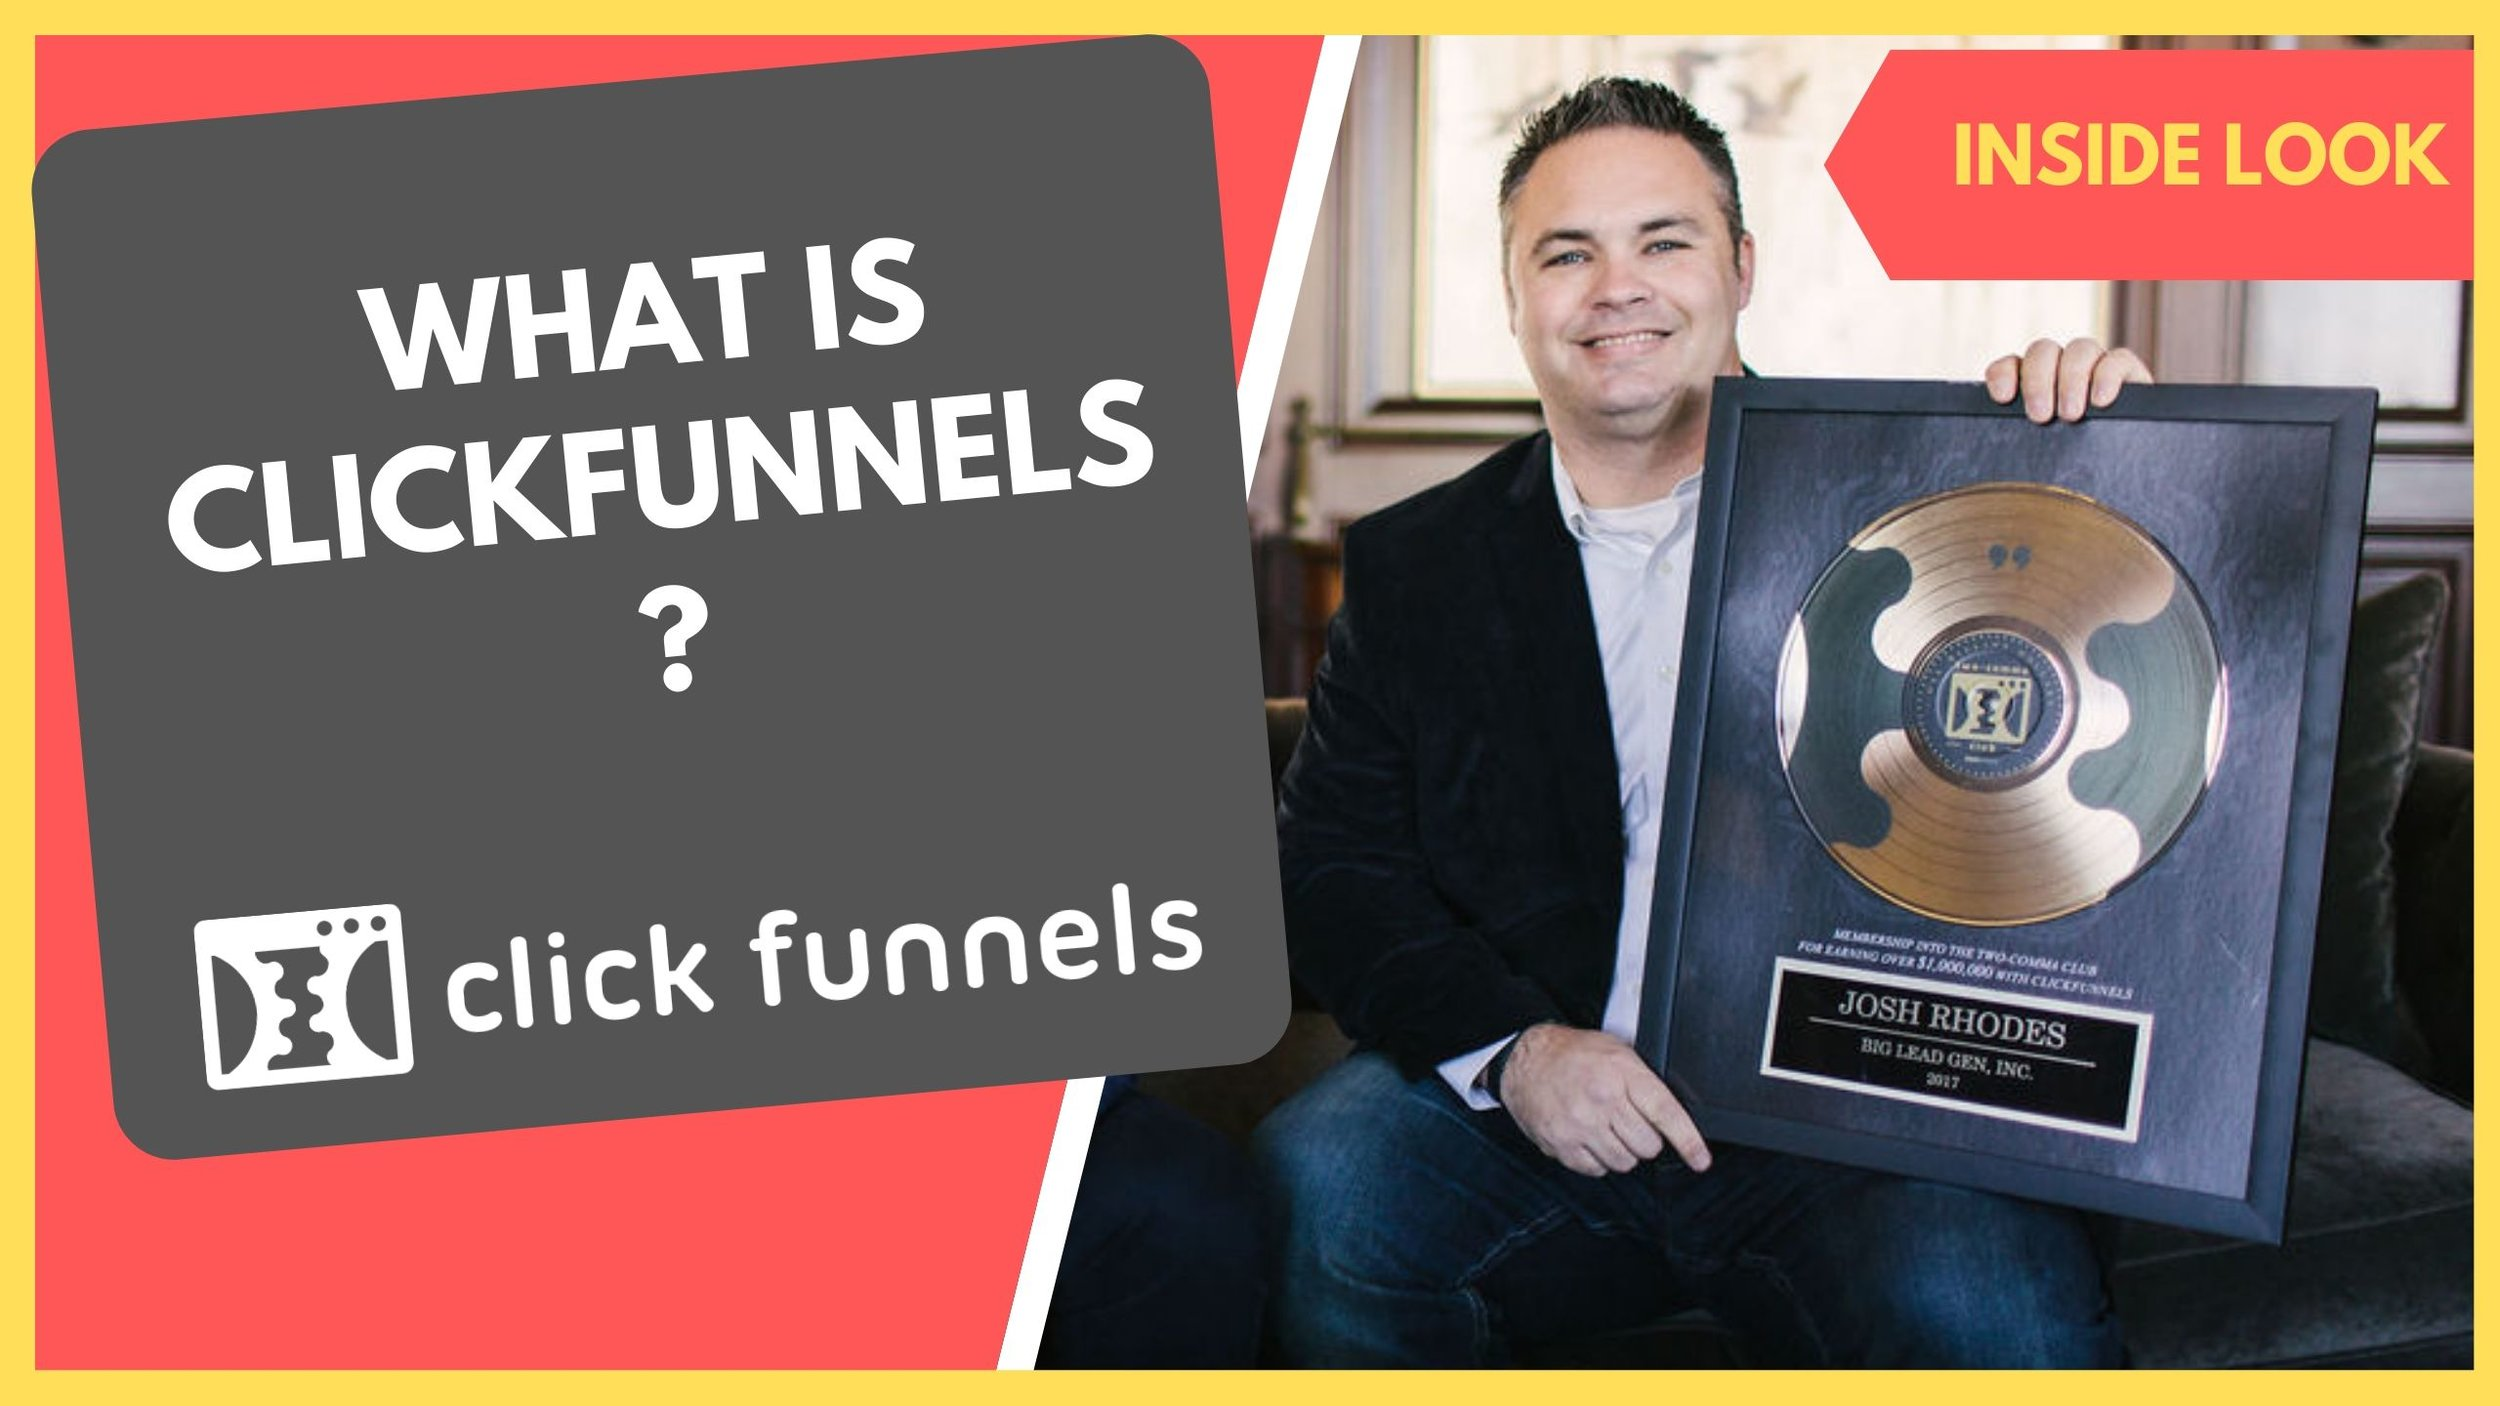 What Is Full Clickfunnels Suite